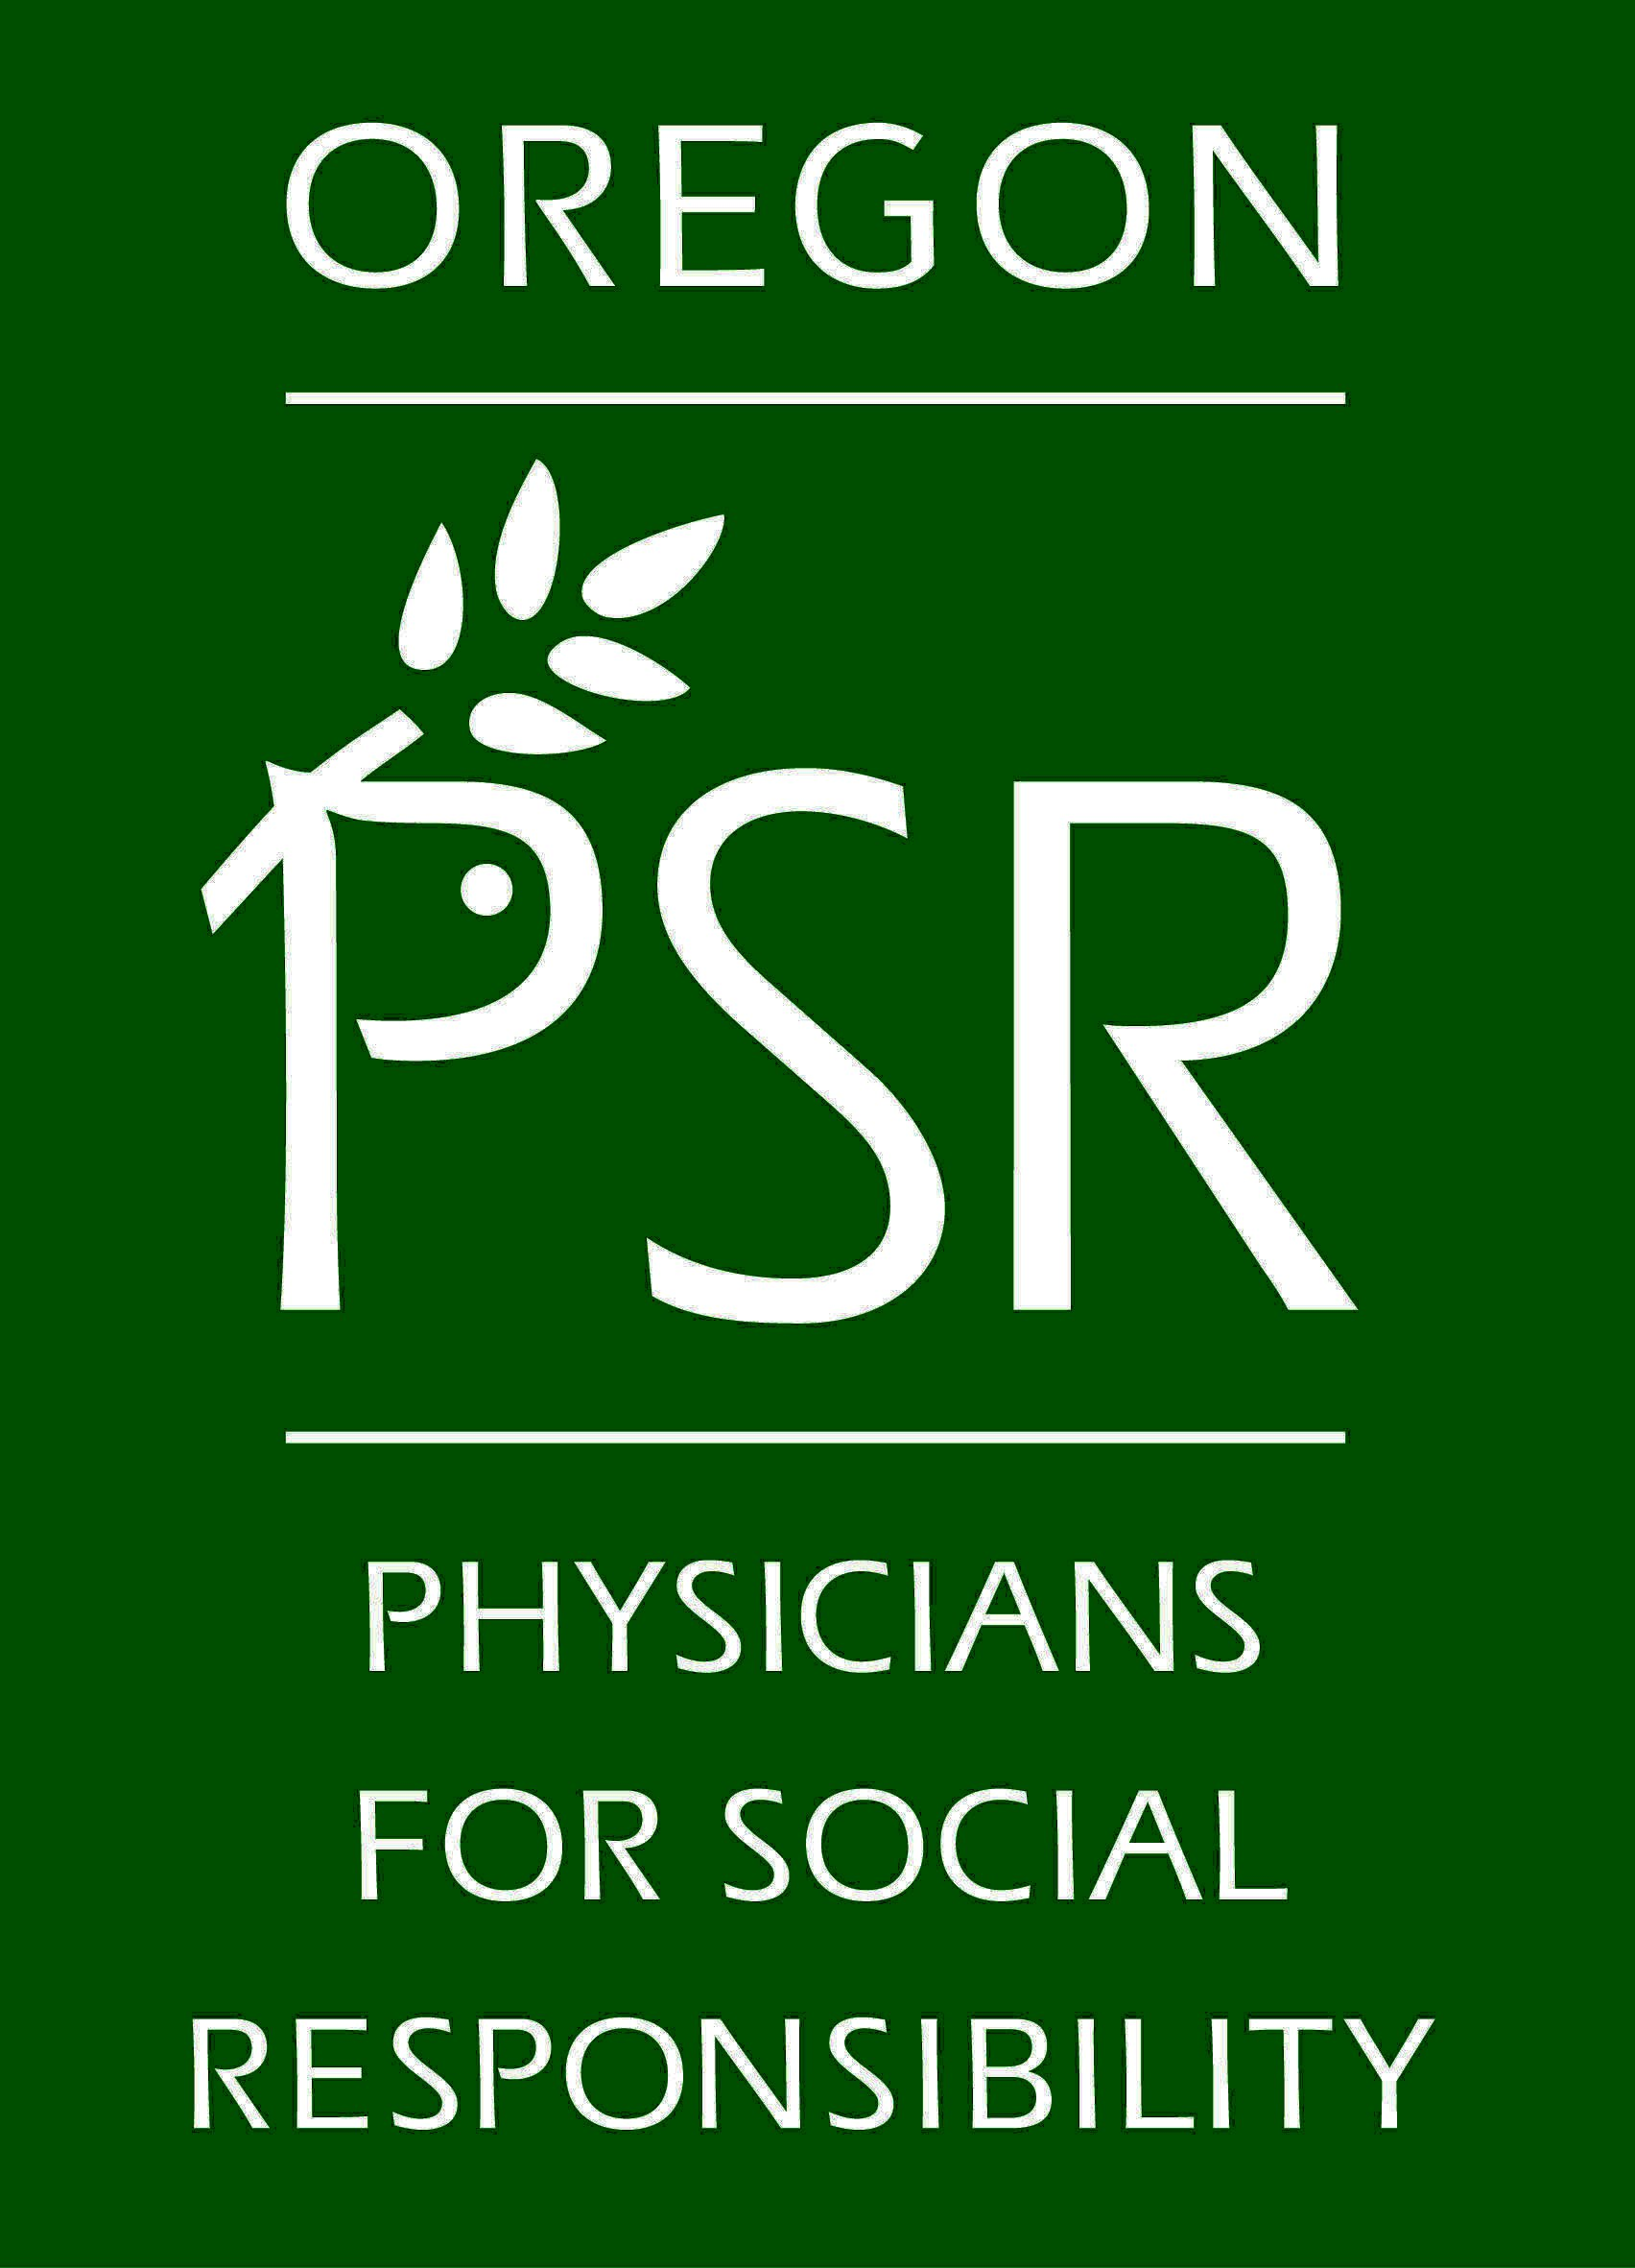 Oregon_PSR_Logo_(dark_green).jpg